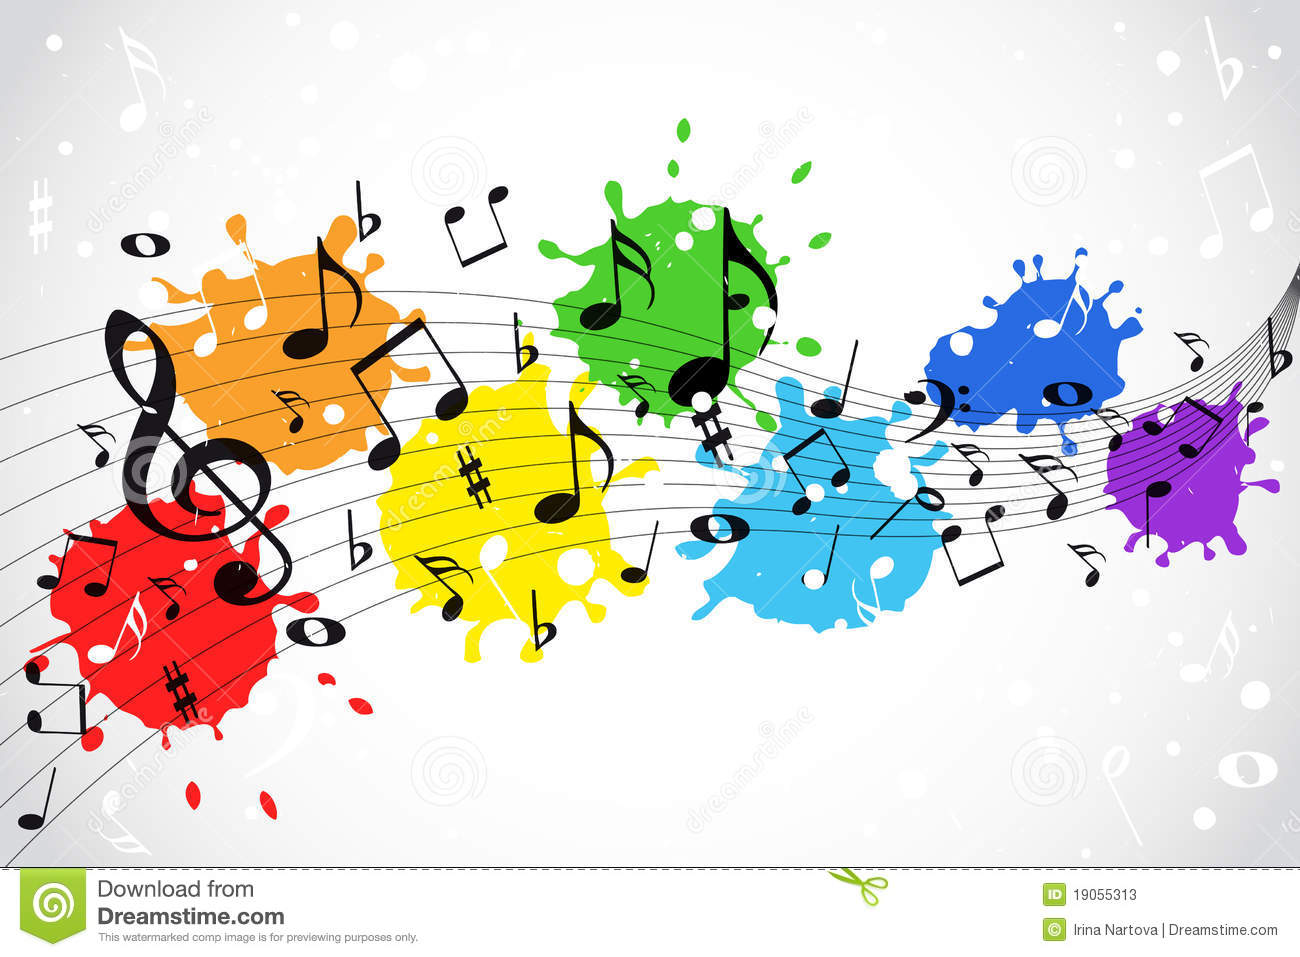 Häufig Notes De Musique - Fond De Couleur Photos stock - Image: 19055313 DA62